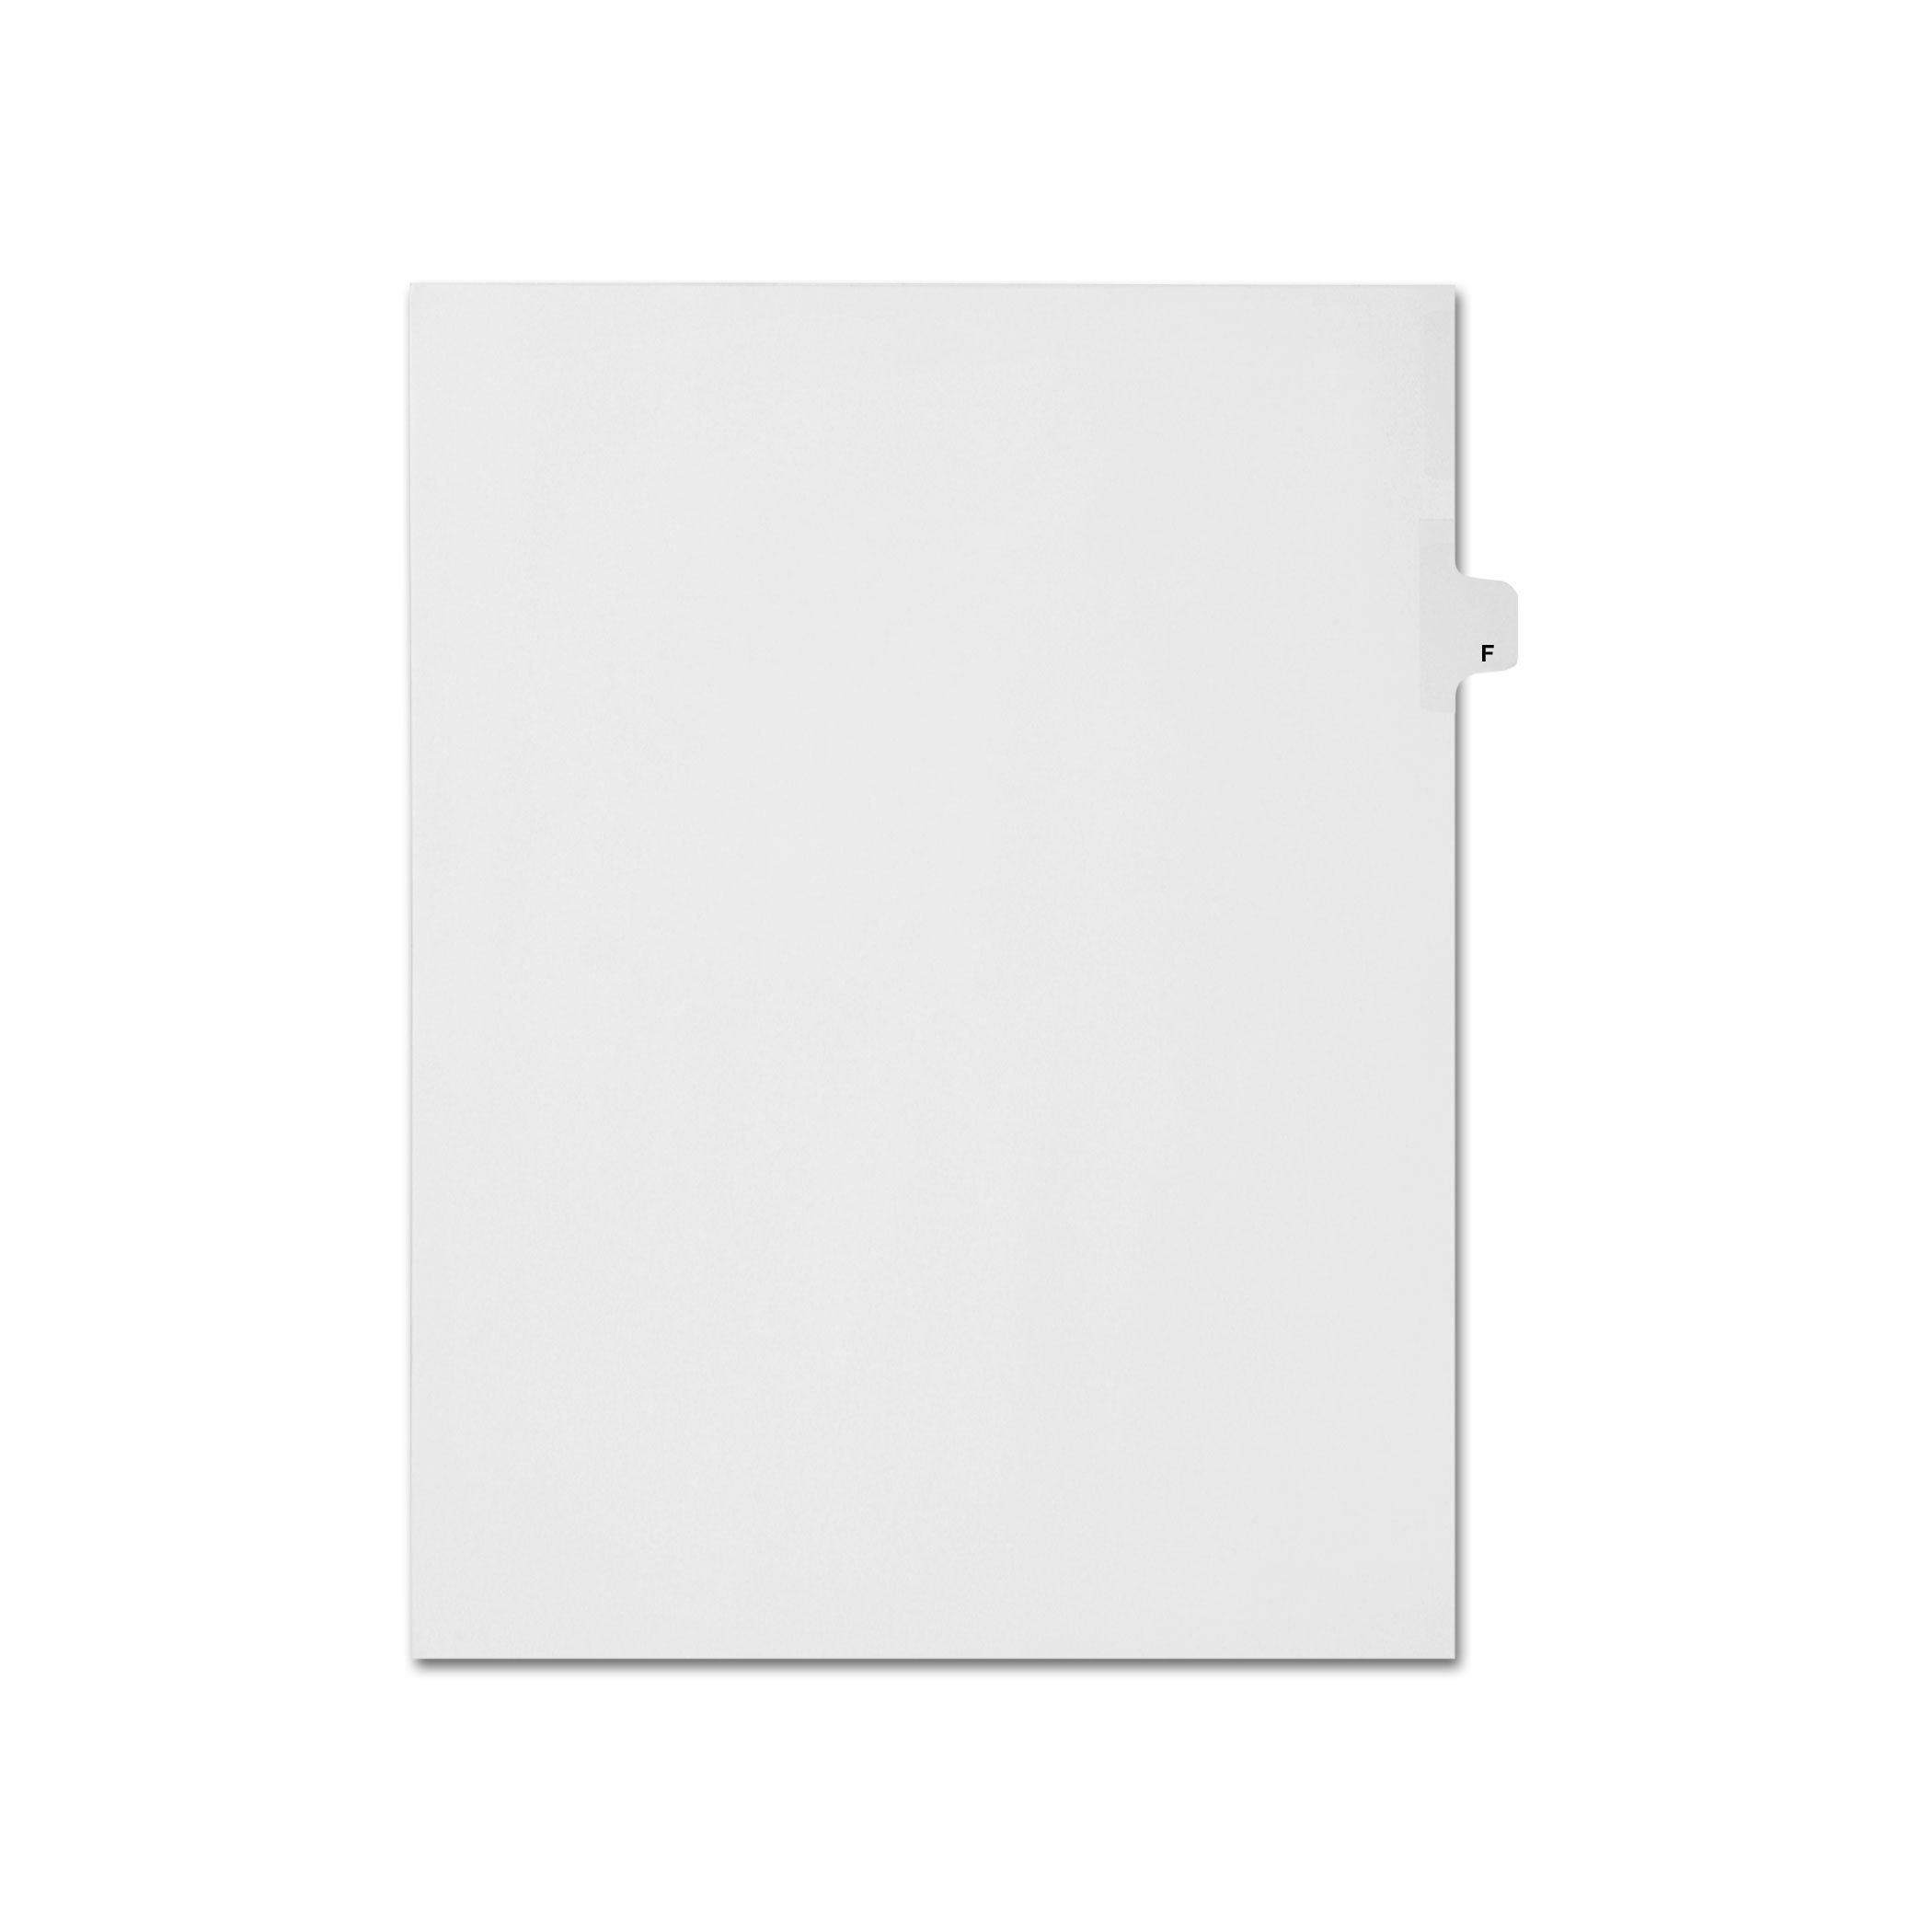 AMZfiling Individual Legal Index Tab Dividers, Compatible with Avery- Printed F, Letter Size, White, Side Tabs, Position 6 (25 Sheets/pkg)